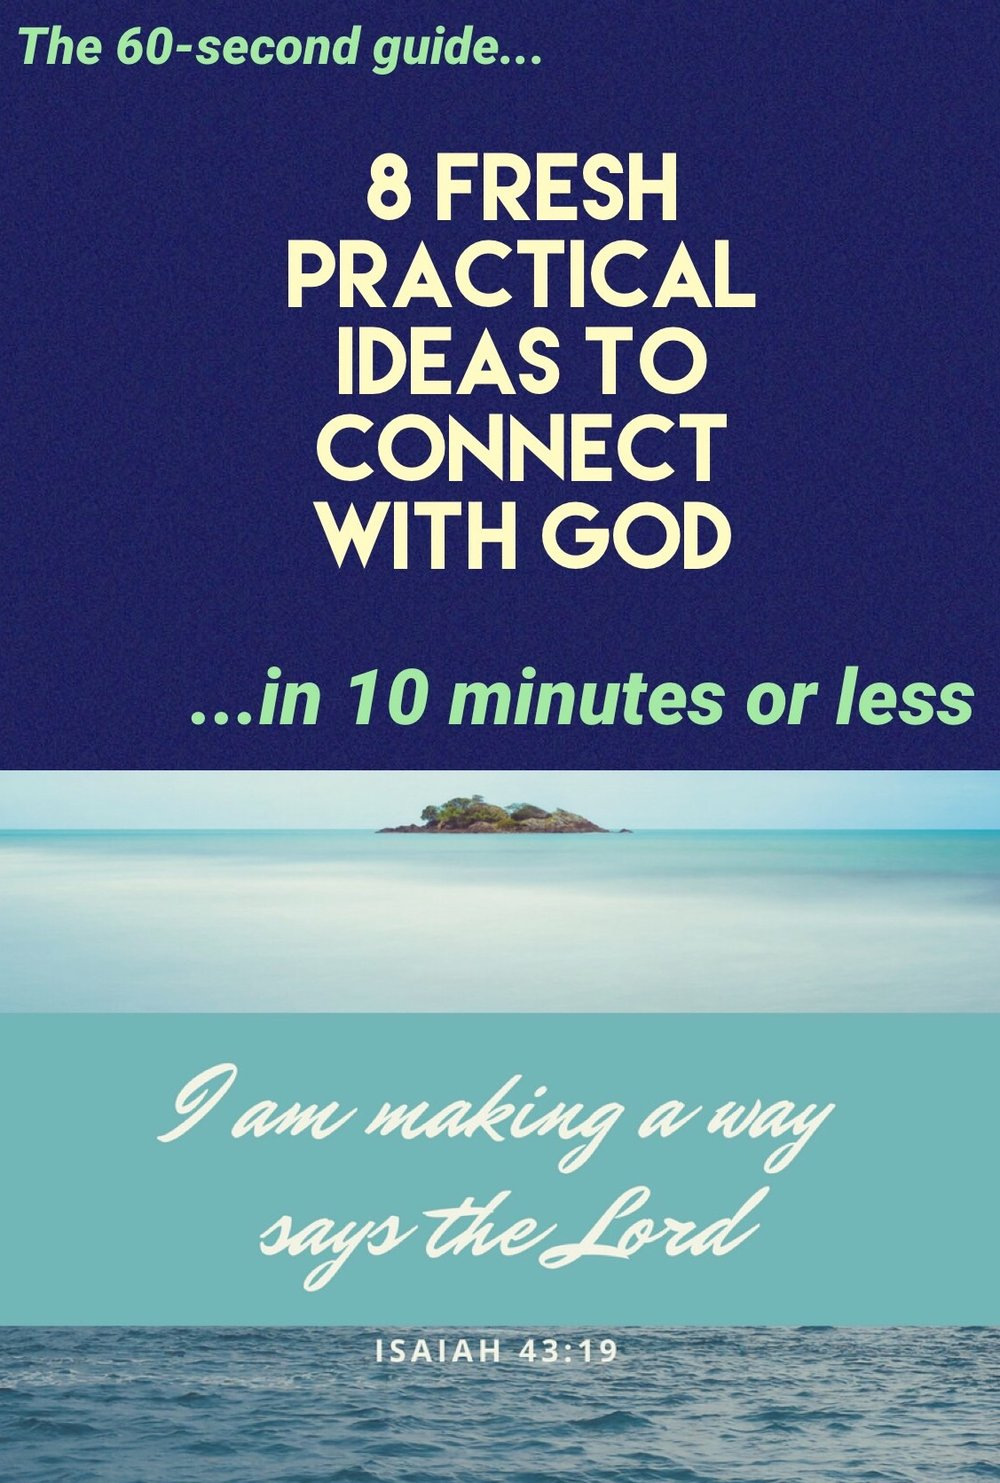 8 WaYs to ConnEct with gOd portrait.jpg